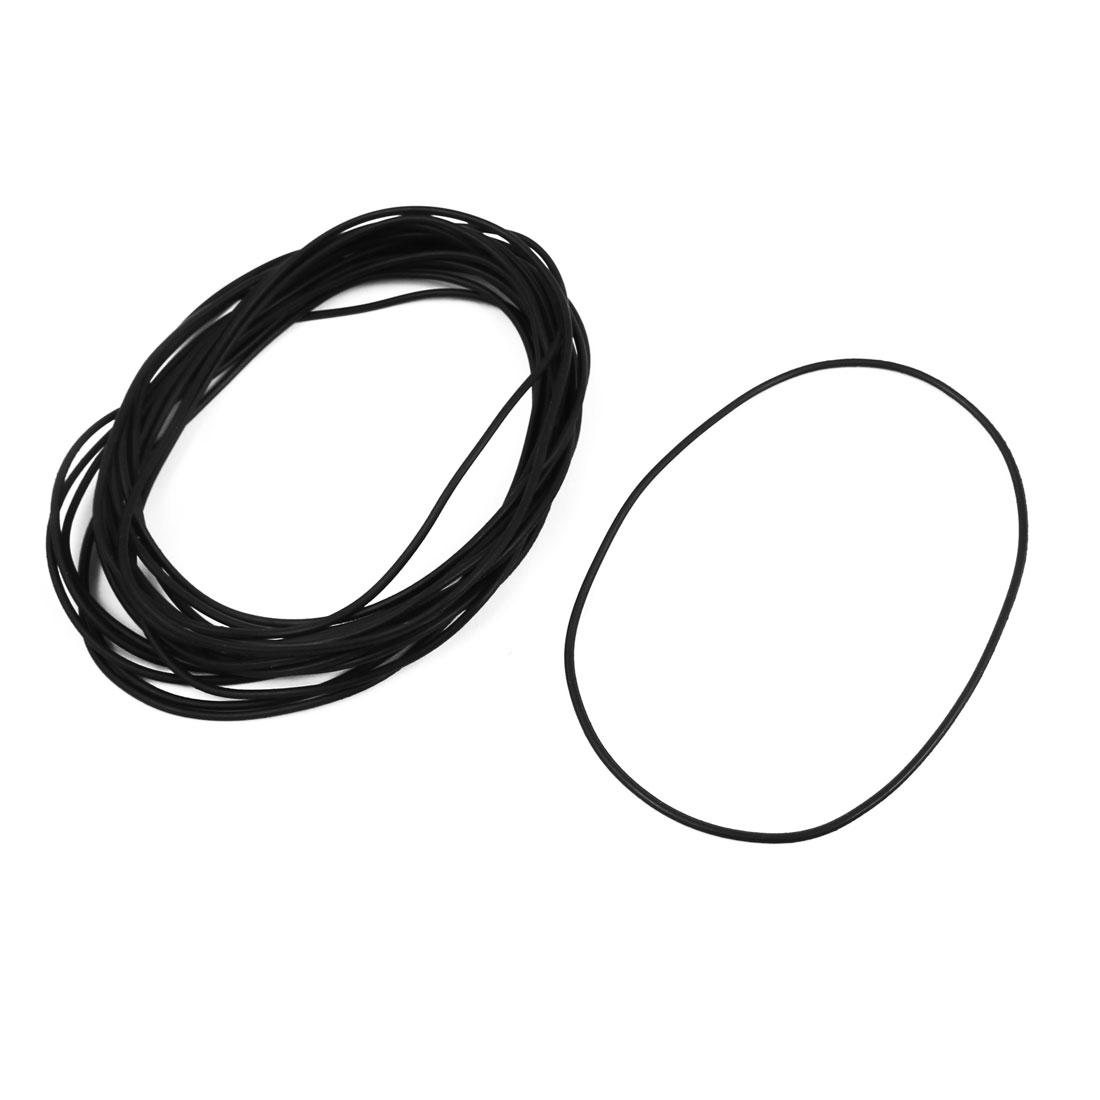 20 Pcs 78mm x 1.5mm Rubber O-rings NBR Heat Resistant Sealing Ring Grommets